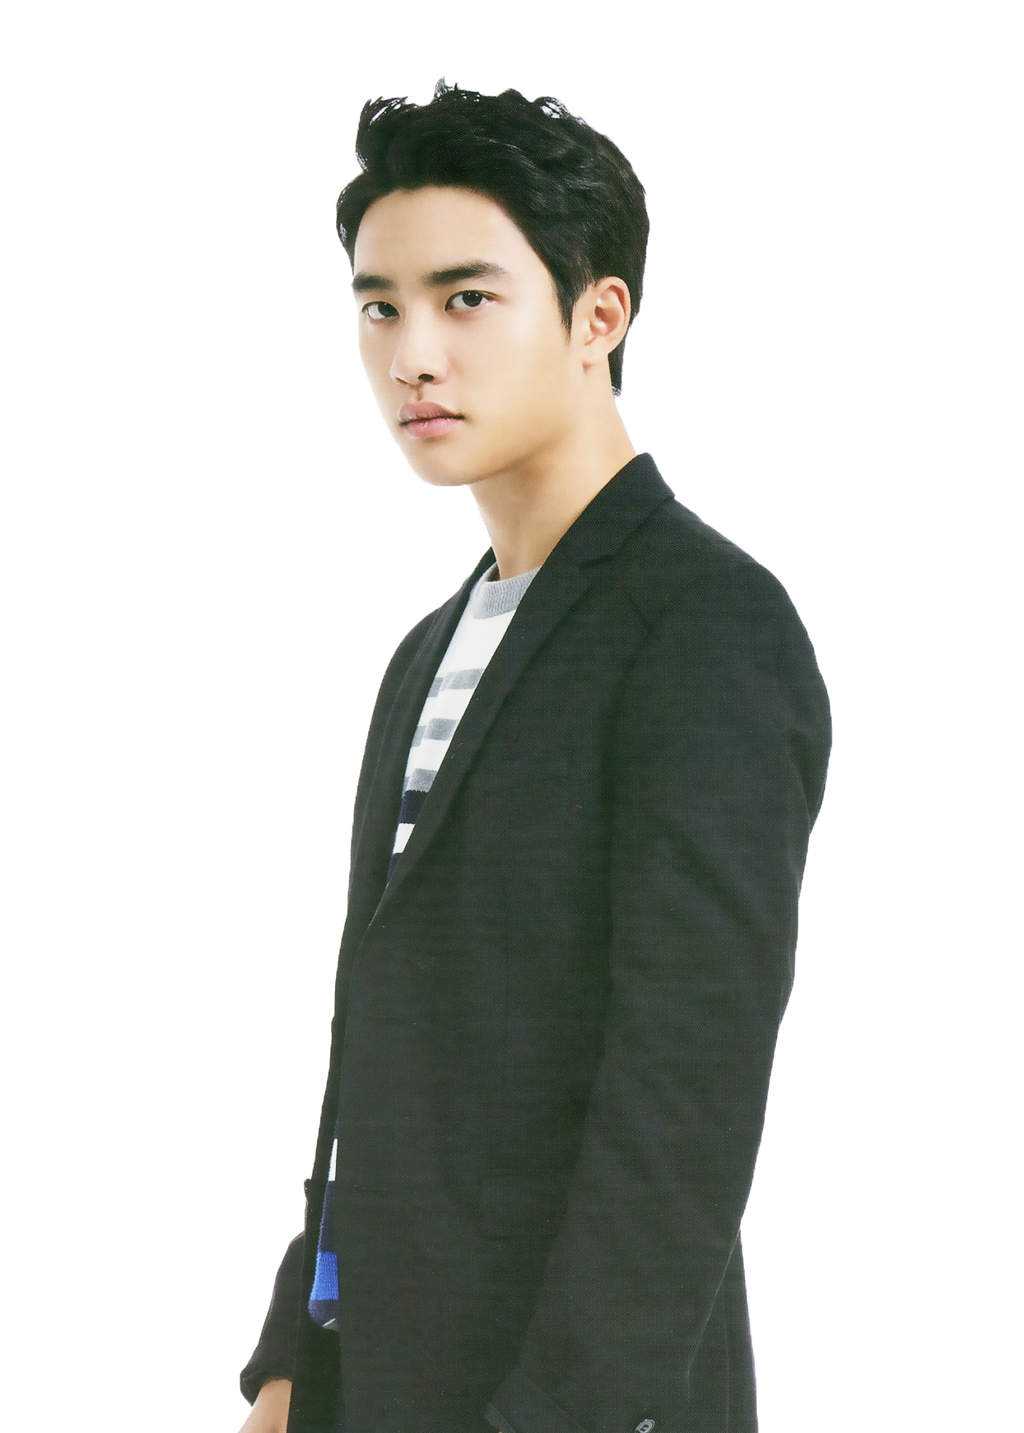 D.O kyungsoo render/PNG 2 by karinafeb09 on DeviantArt